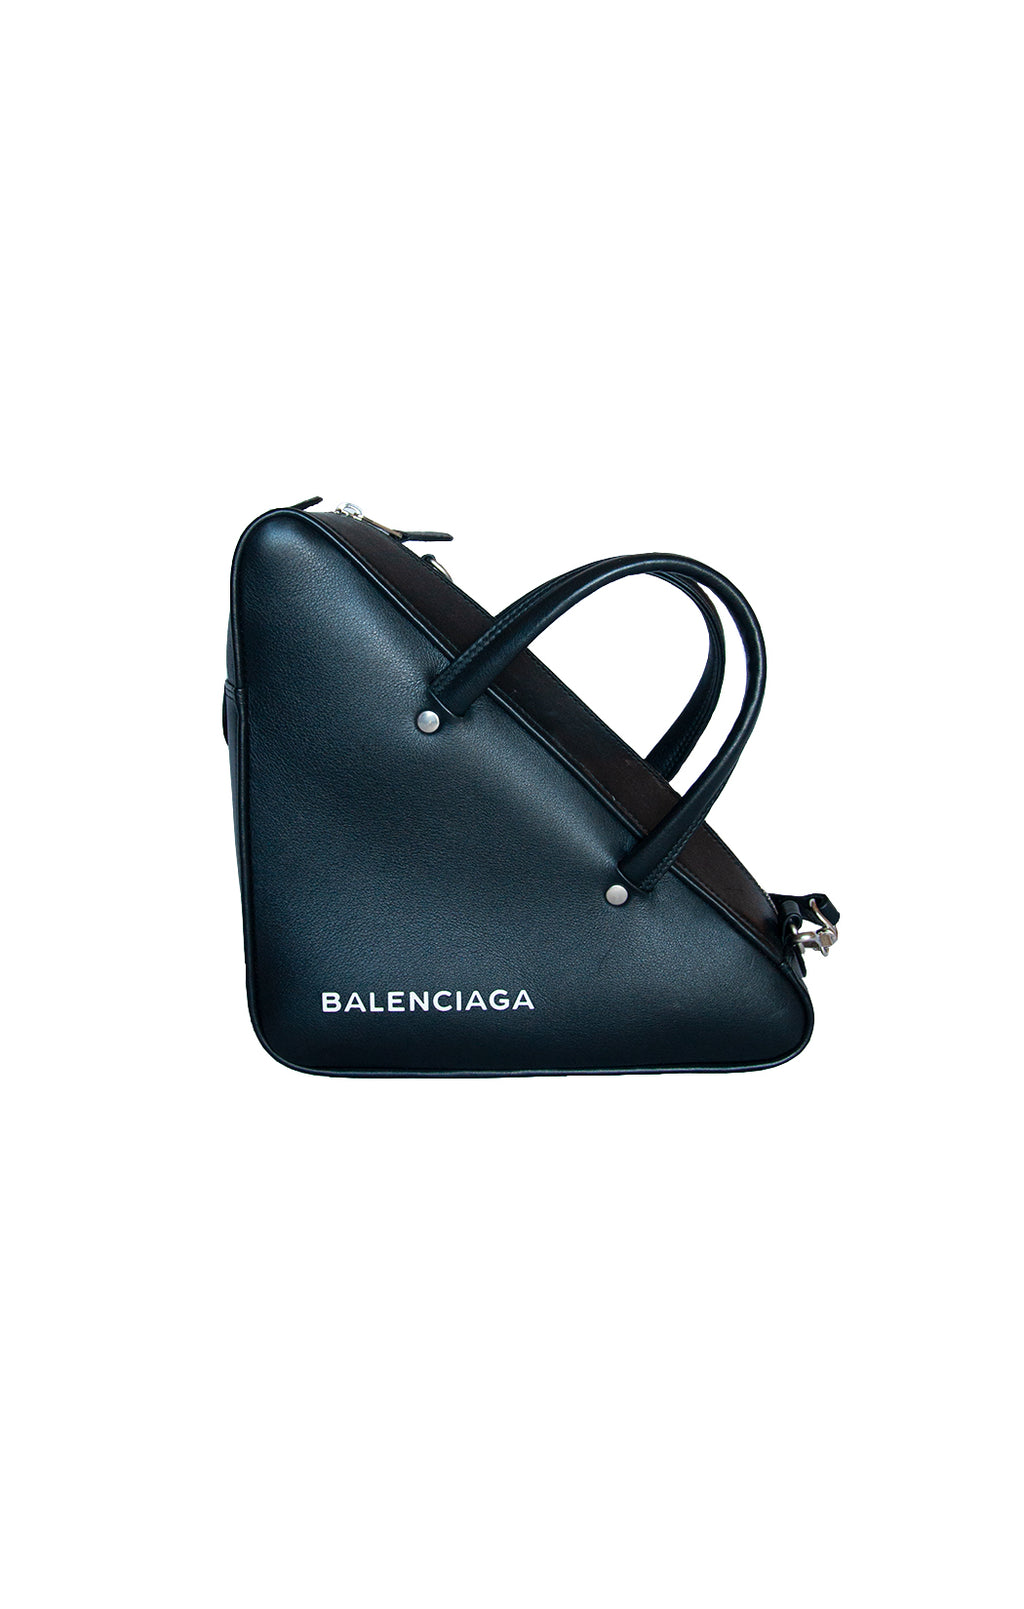 Front view of BALENCIAGA Handbag Size: 9.5 in. x 9.5 in. x 4 in.